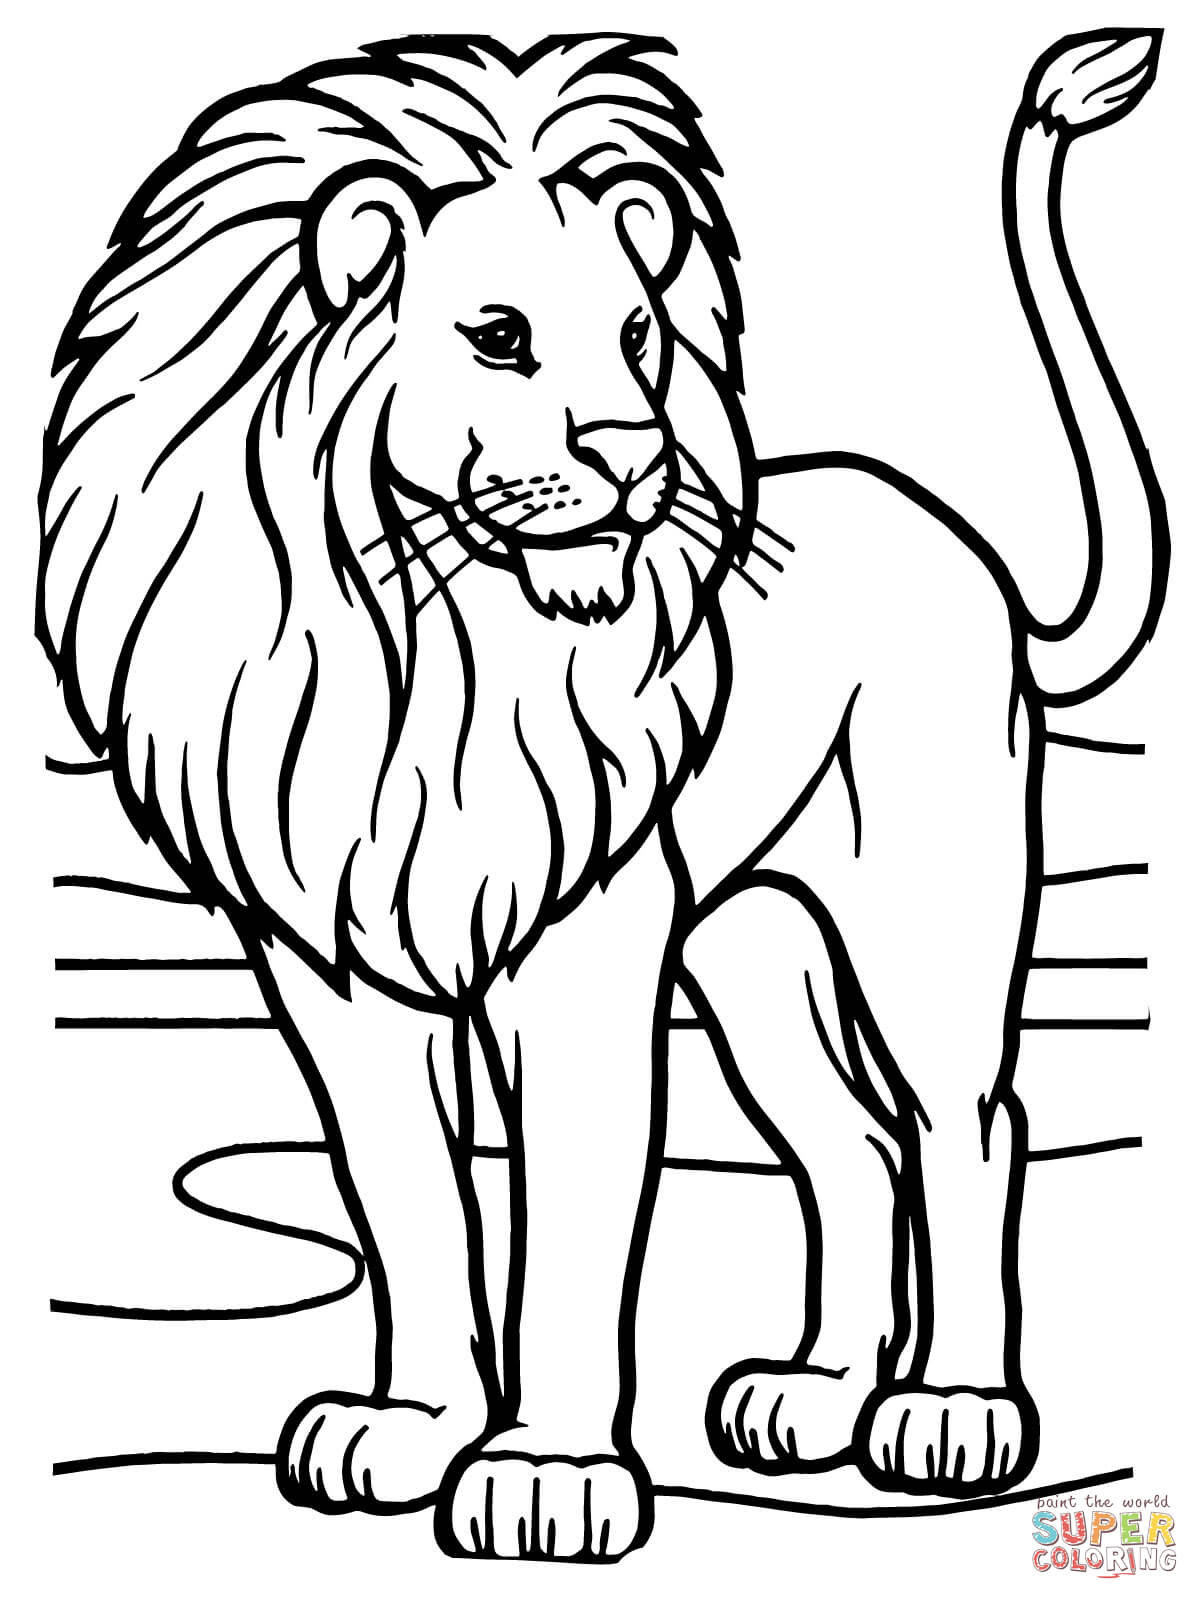 coloring pages lion lion coloring pages to download and print for free coloring lion pages